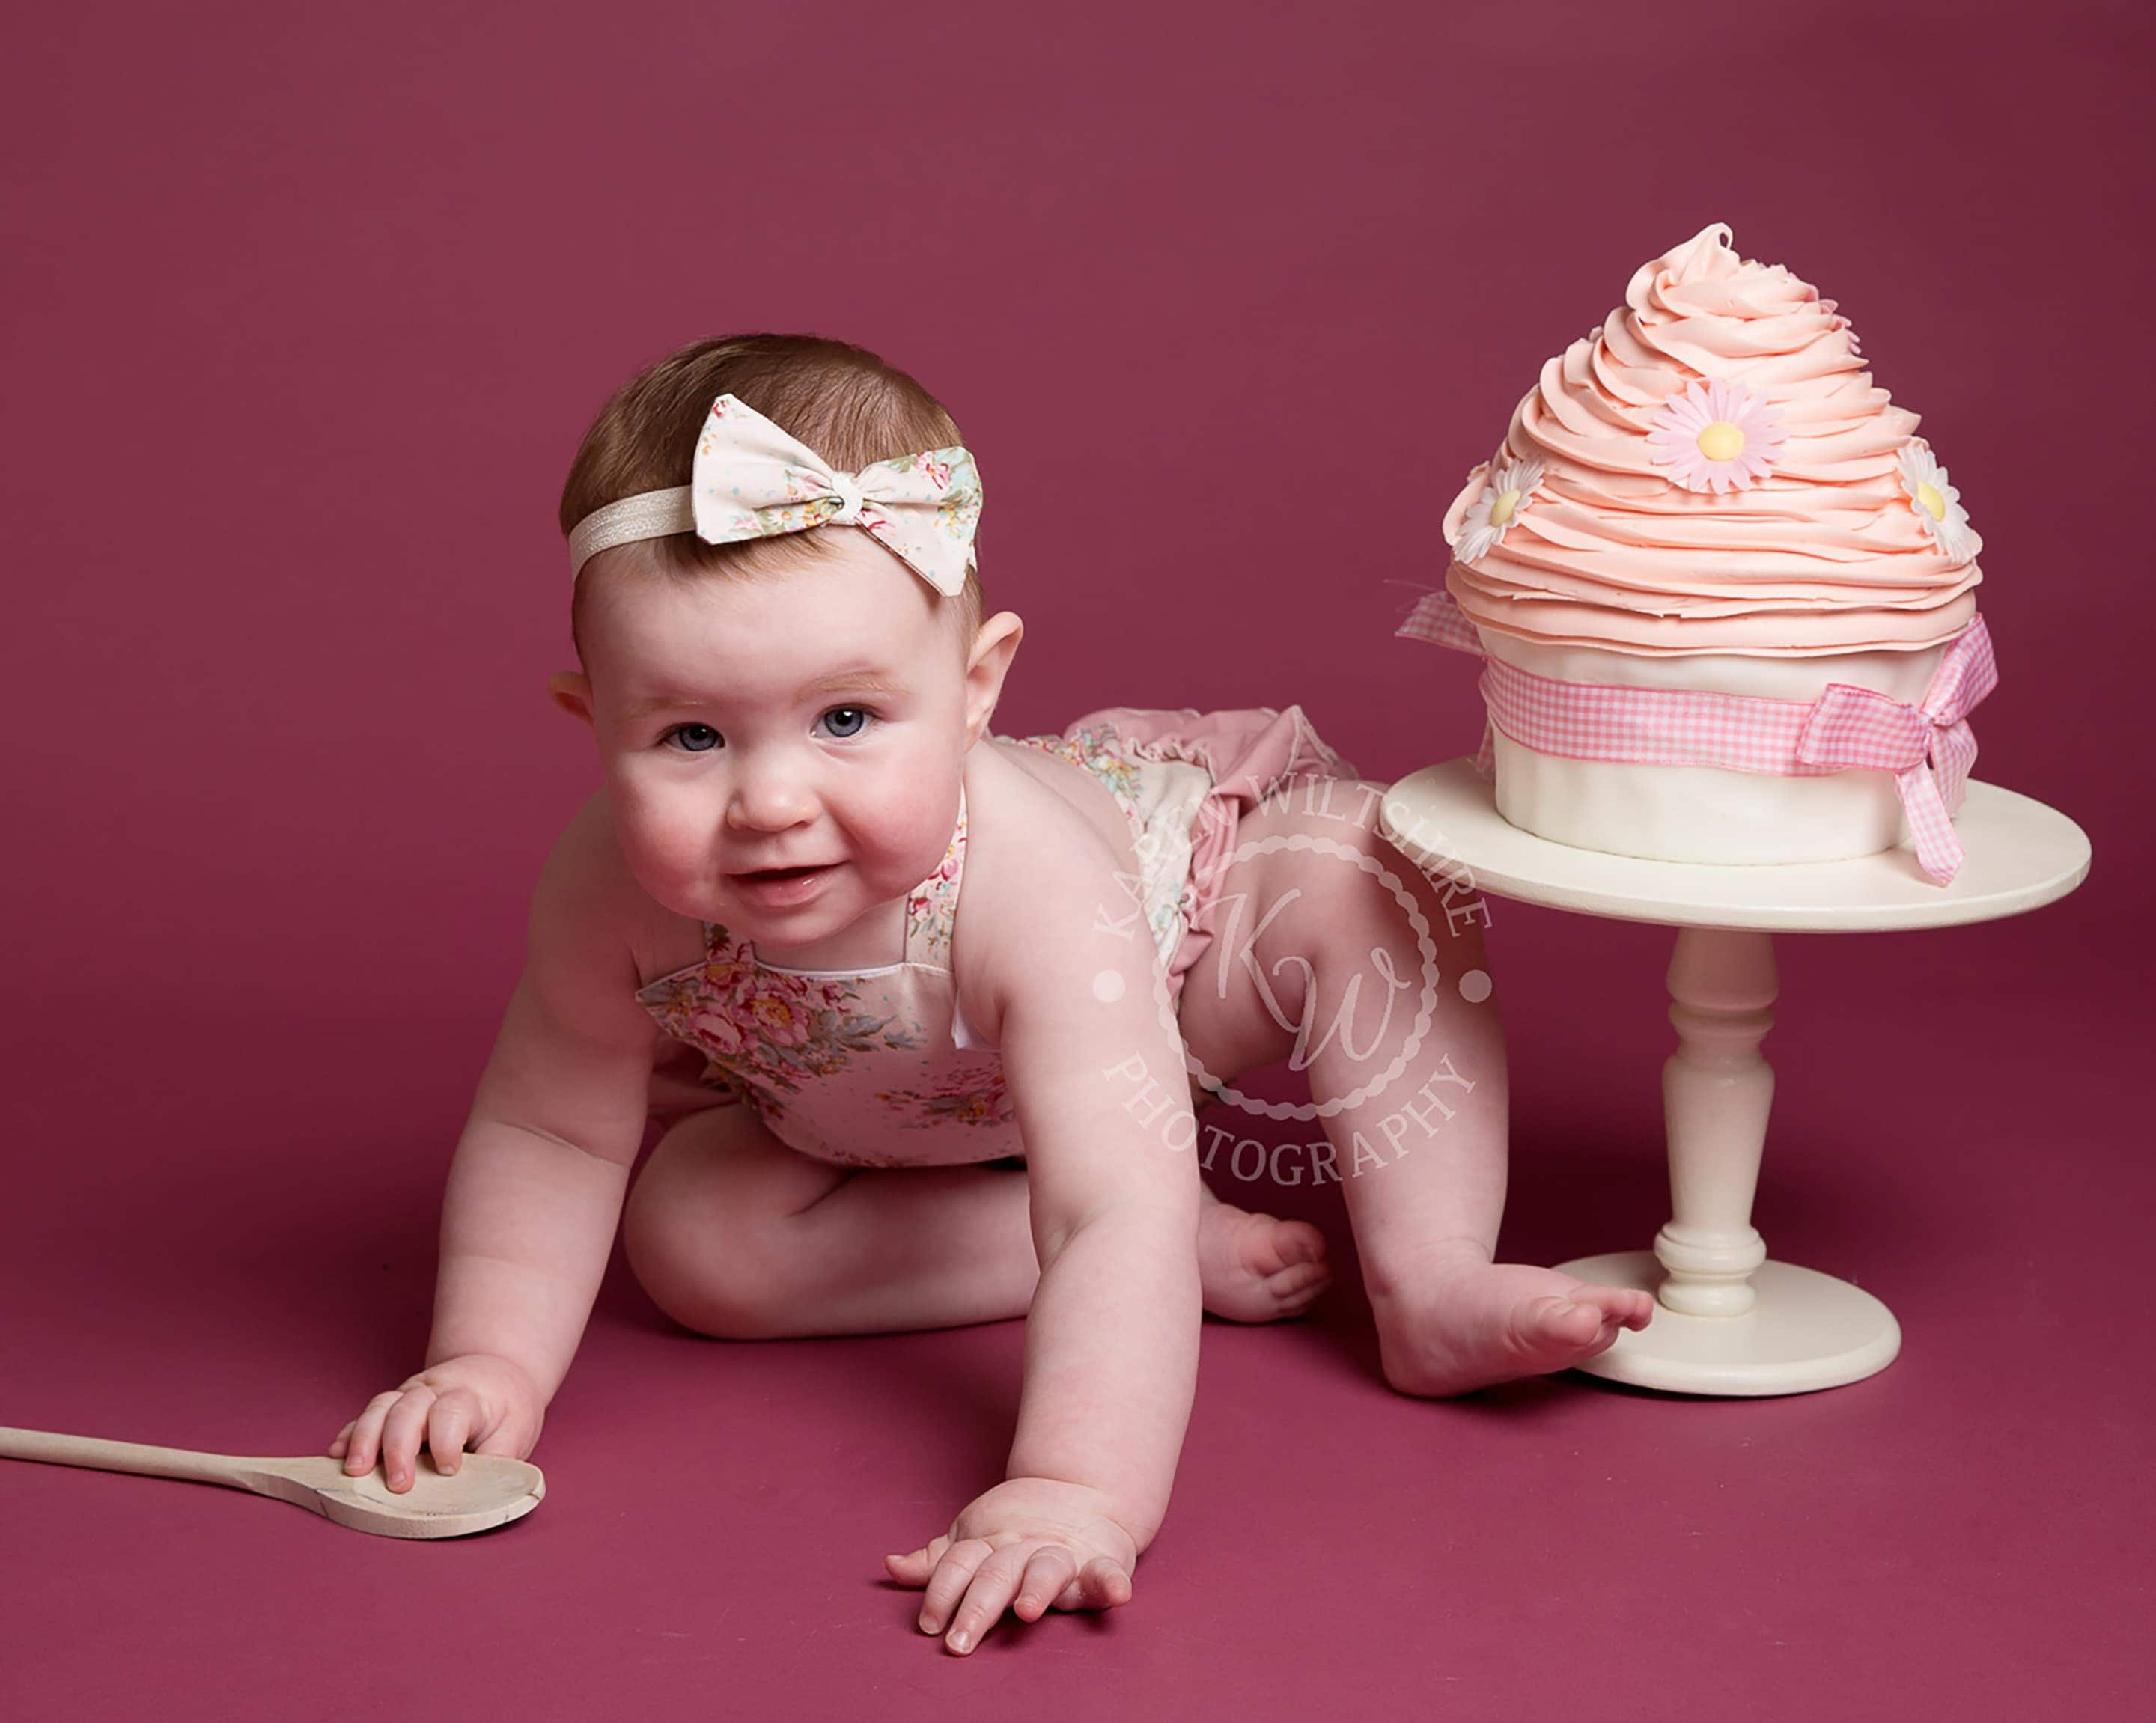 baby girl in pink romper and bow headband enjoying cake smash